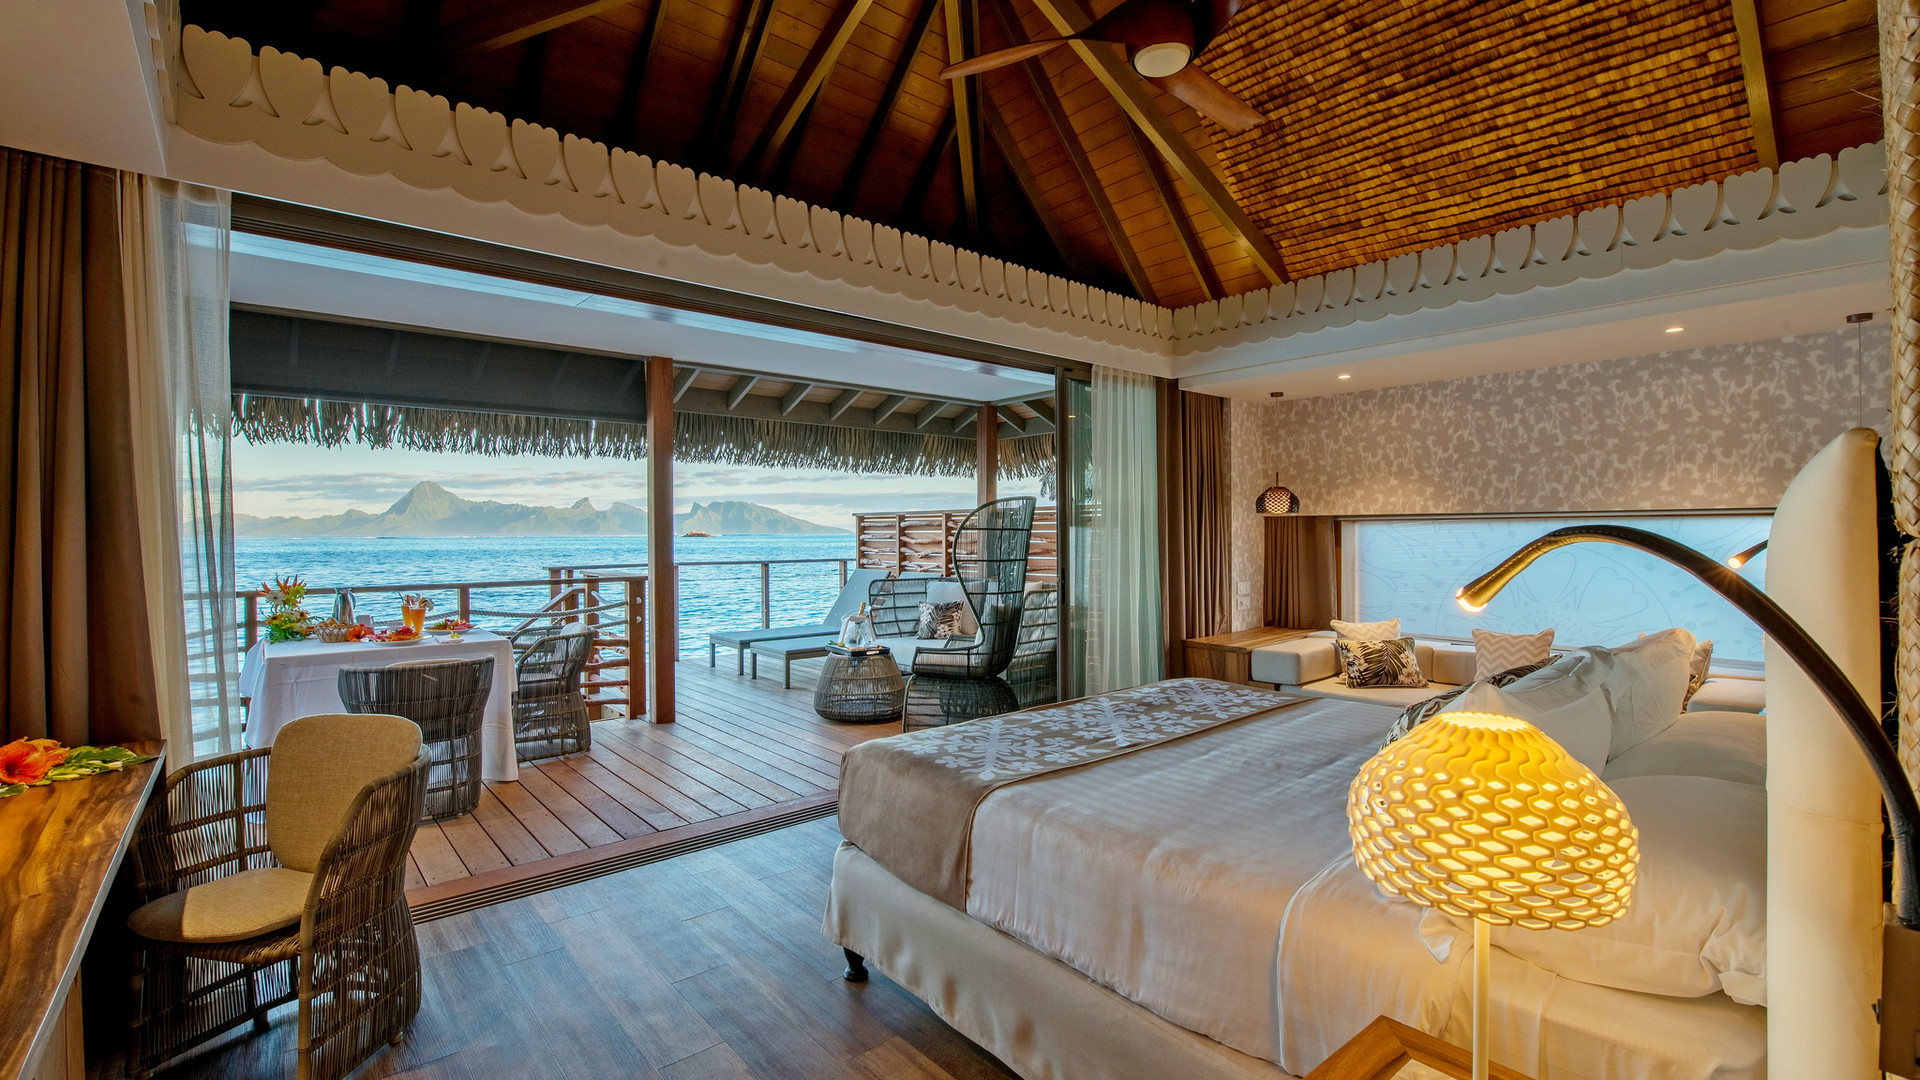 Intercontinental_Tahiti-Overwater_Bungalow